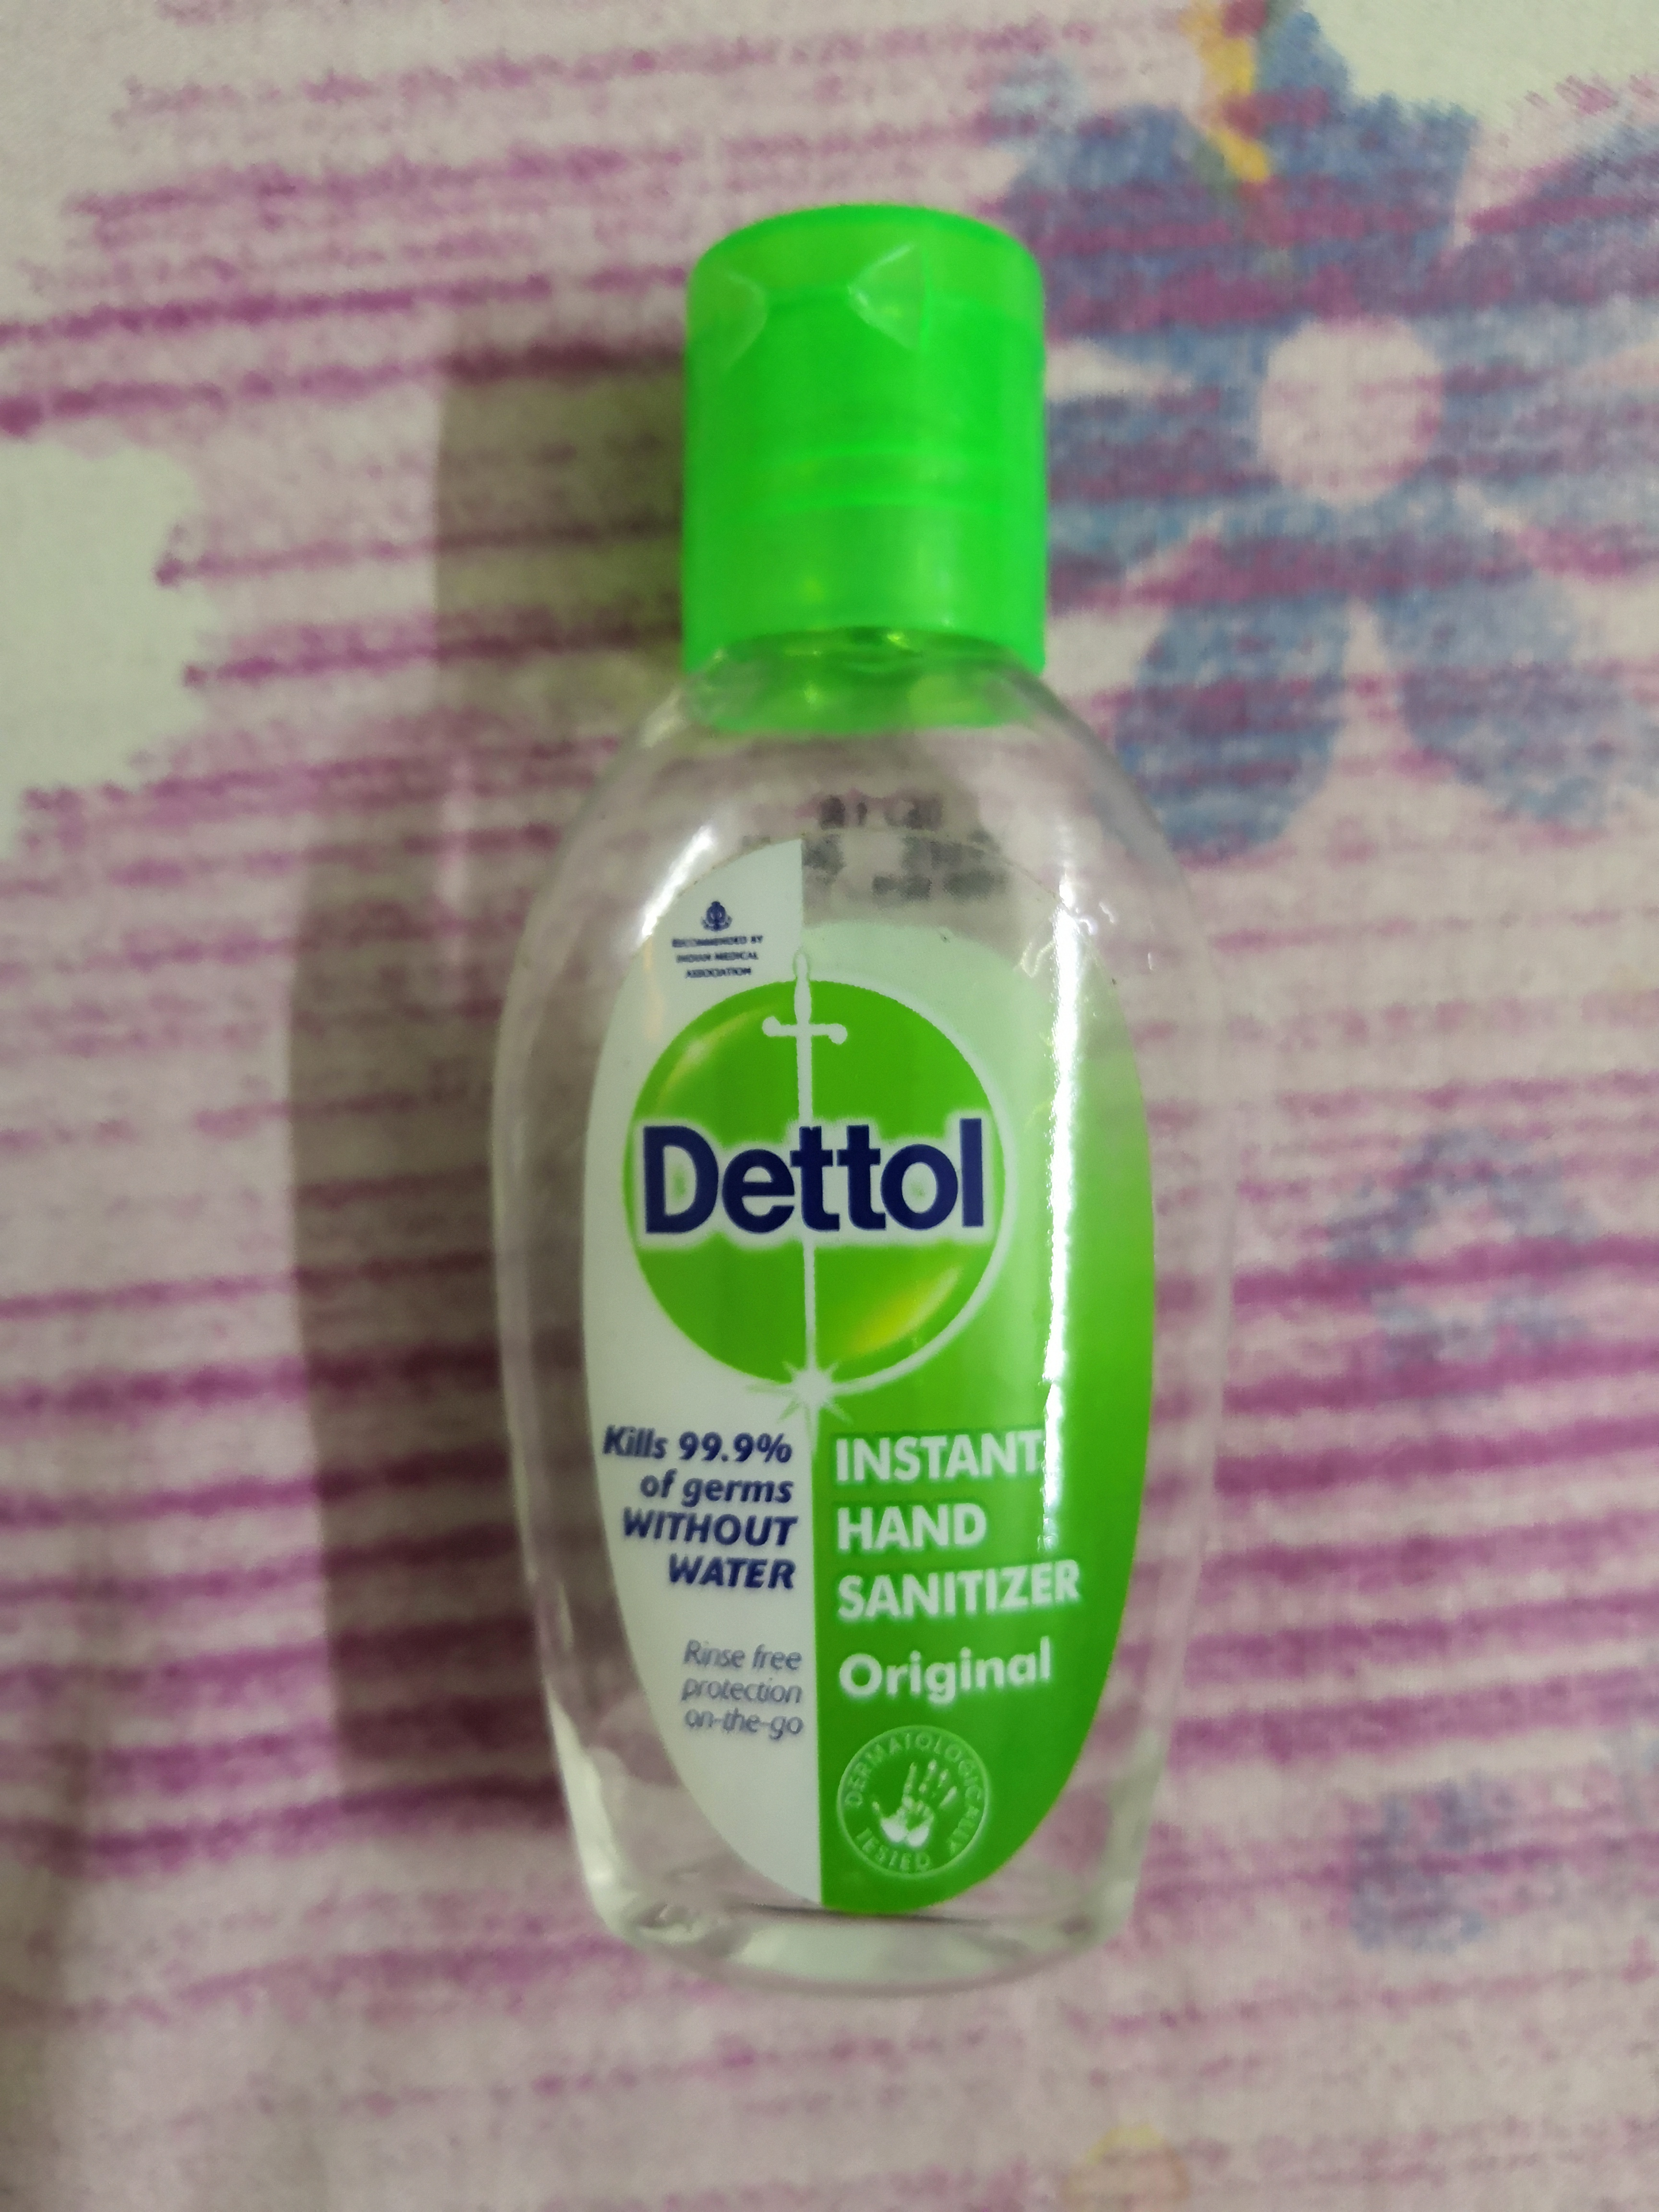 Dettol Instant Hand Sanitizer-An effective sanitizer-By stylefitjanu